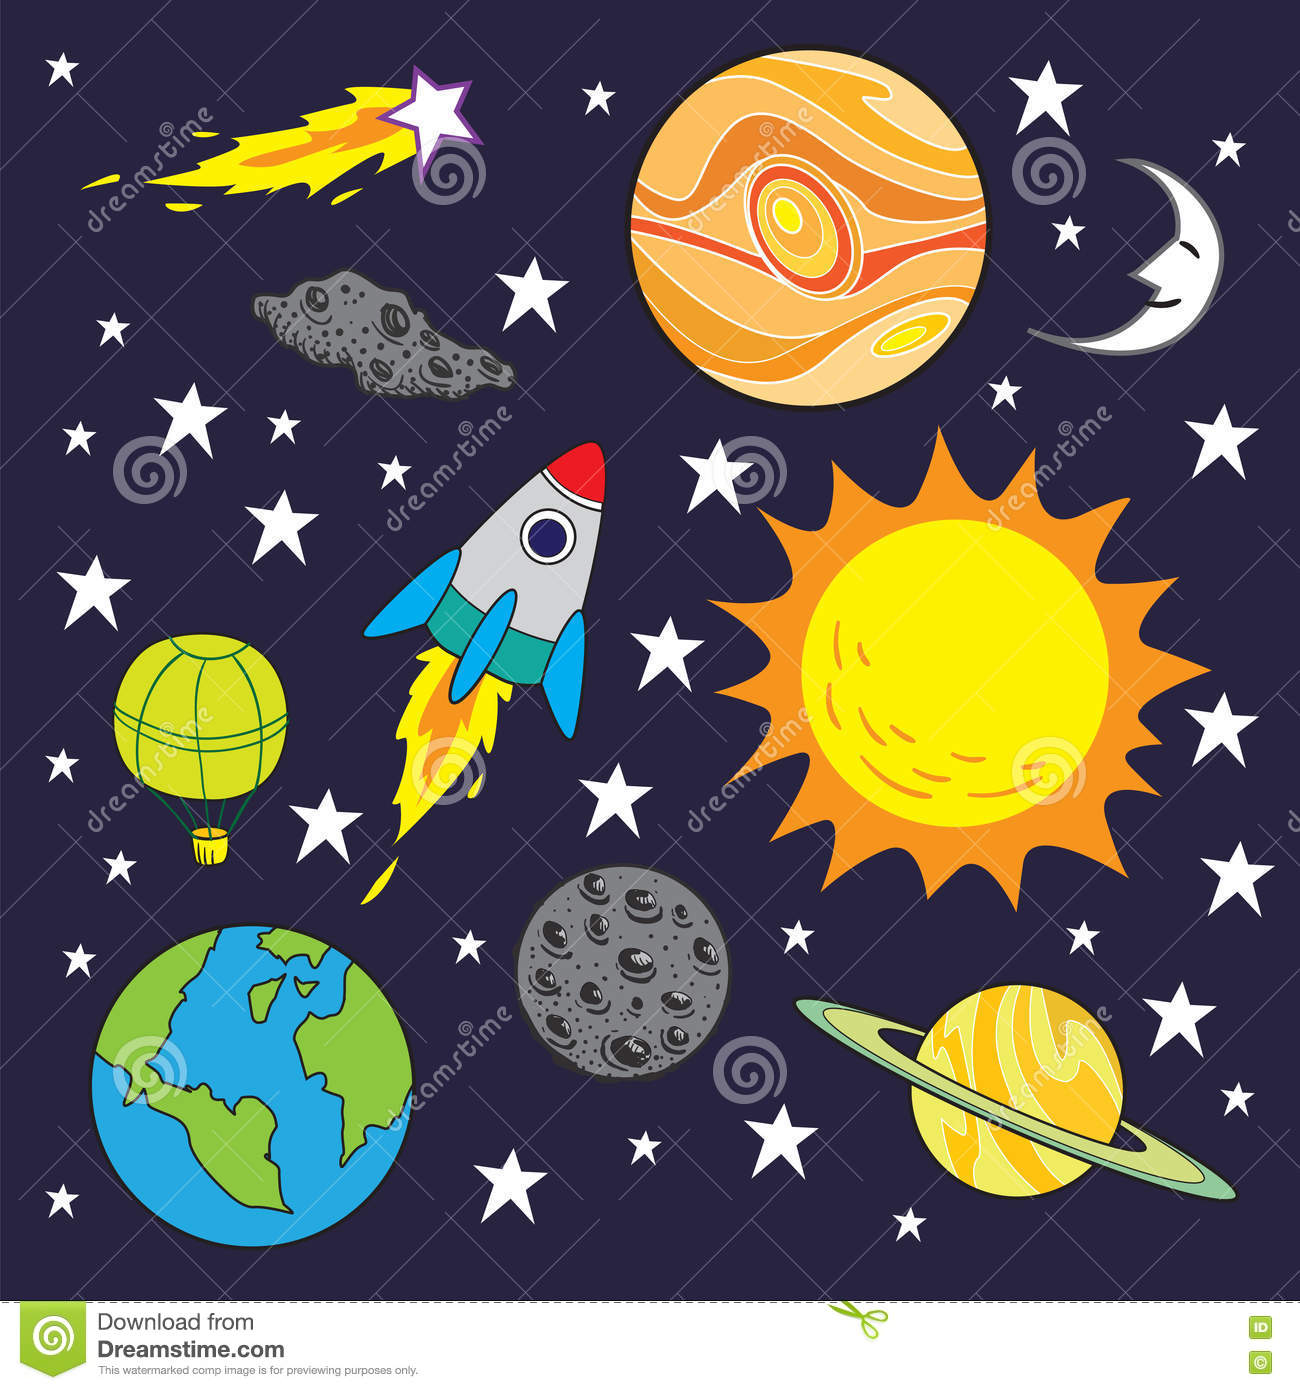 Kids Room Decoration Space Theme Vector Illustration: Space Theme Cartoon Background Stock Vector